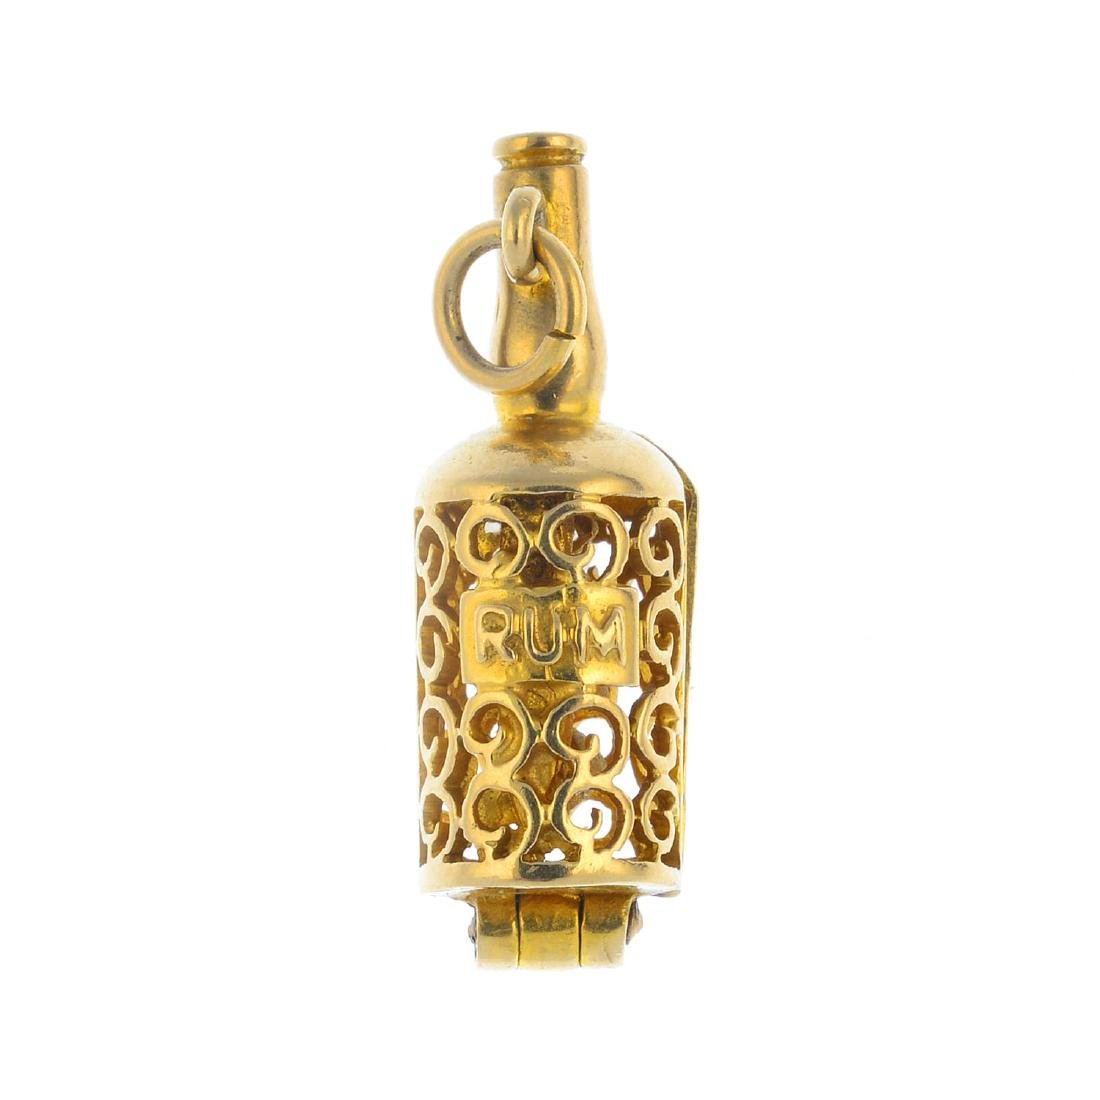 A 9ct gold 'Ship in a bottle' charm. The openwork